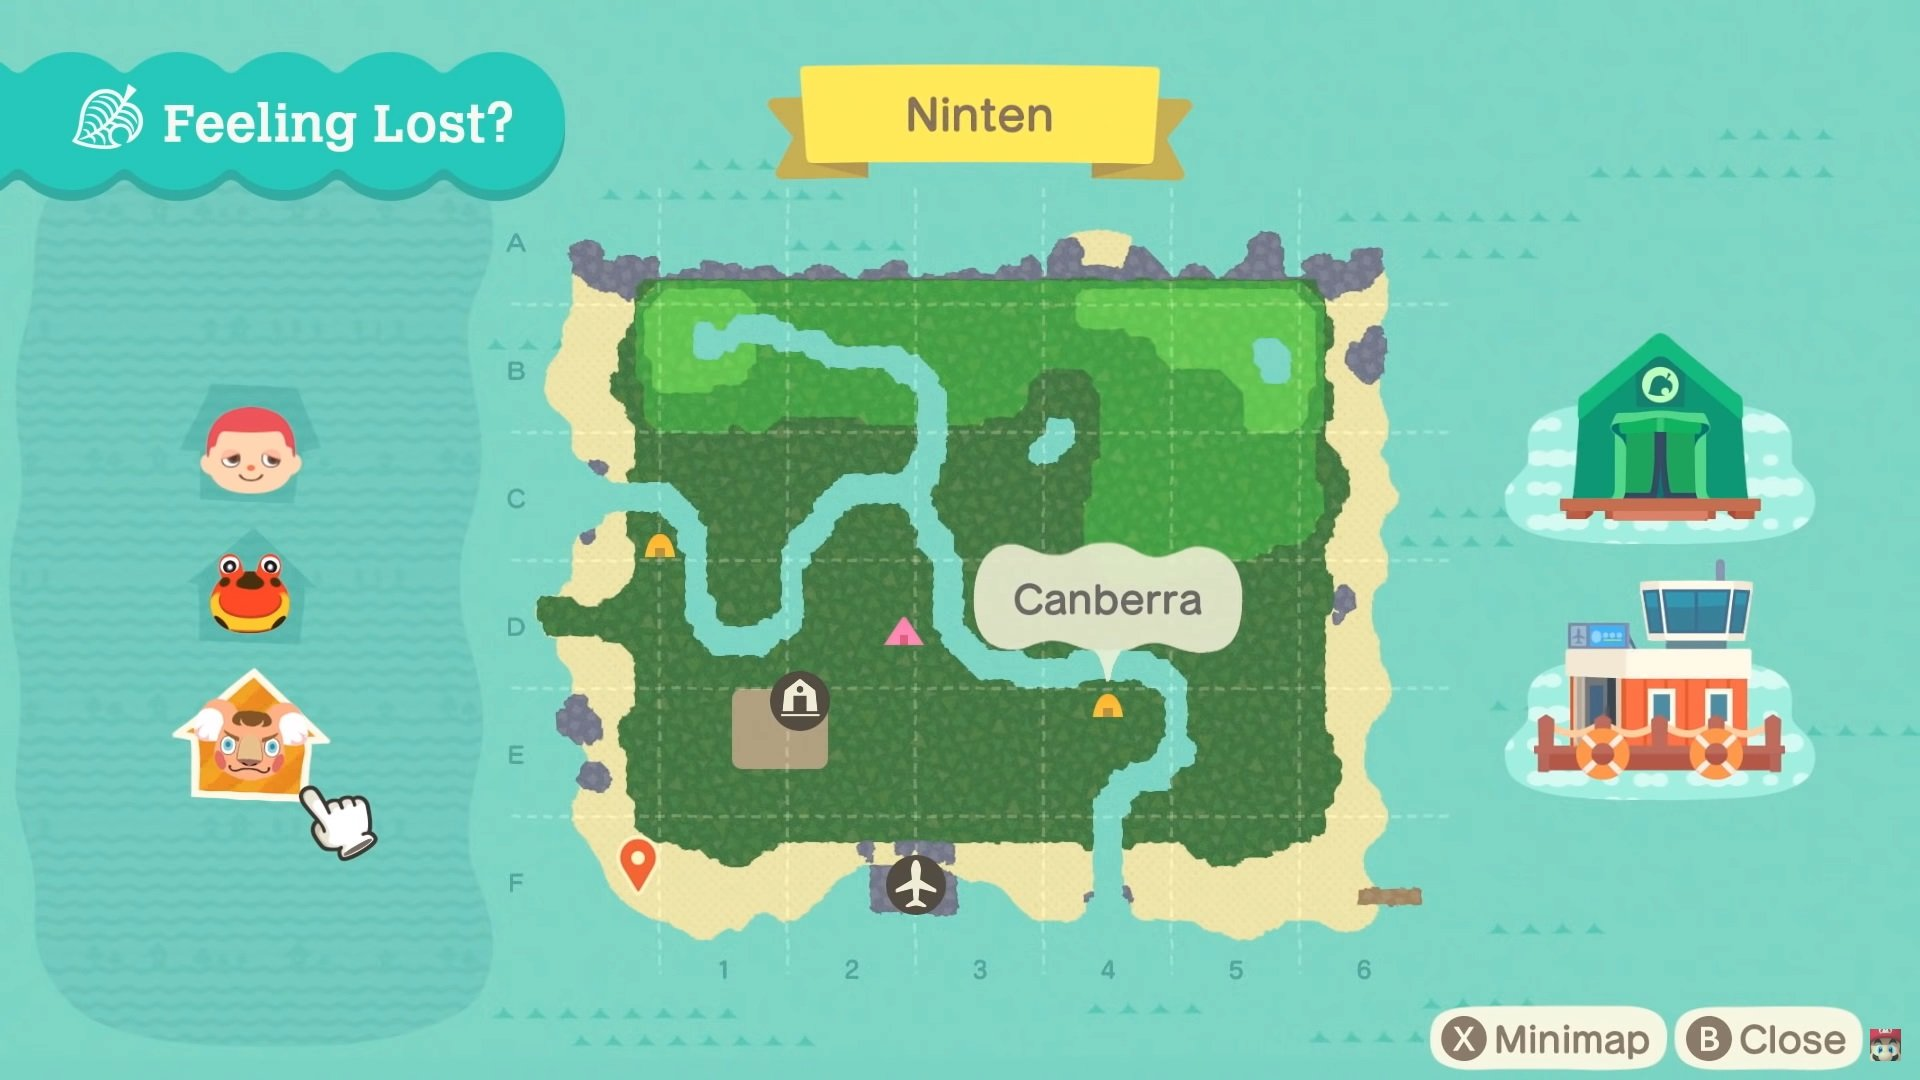 You can also view your Map to orient yourself if you get lost in Animal Crossing: New Horizons.